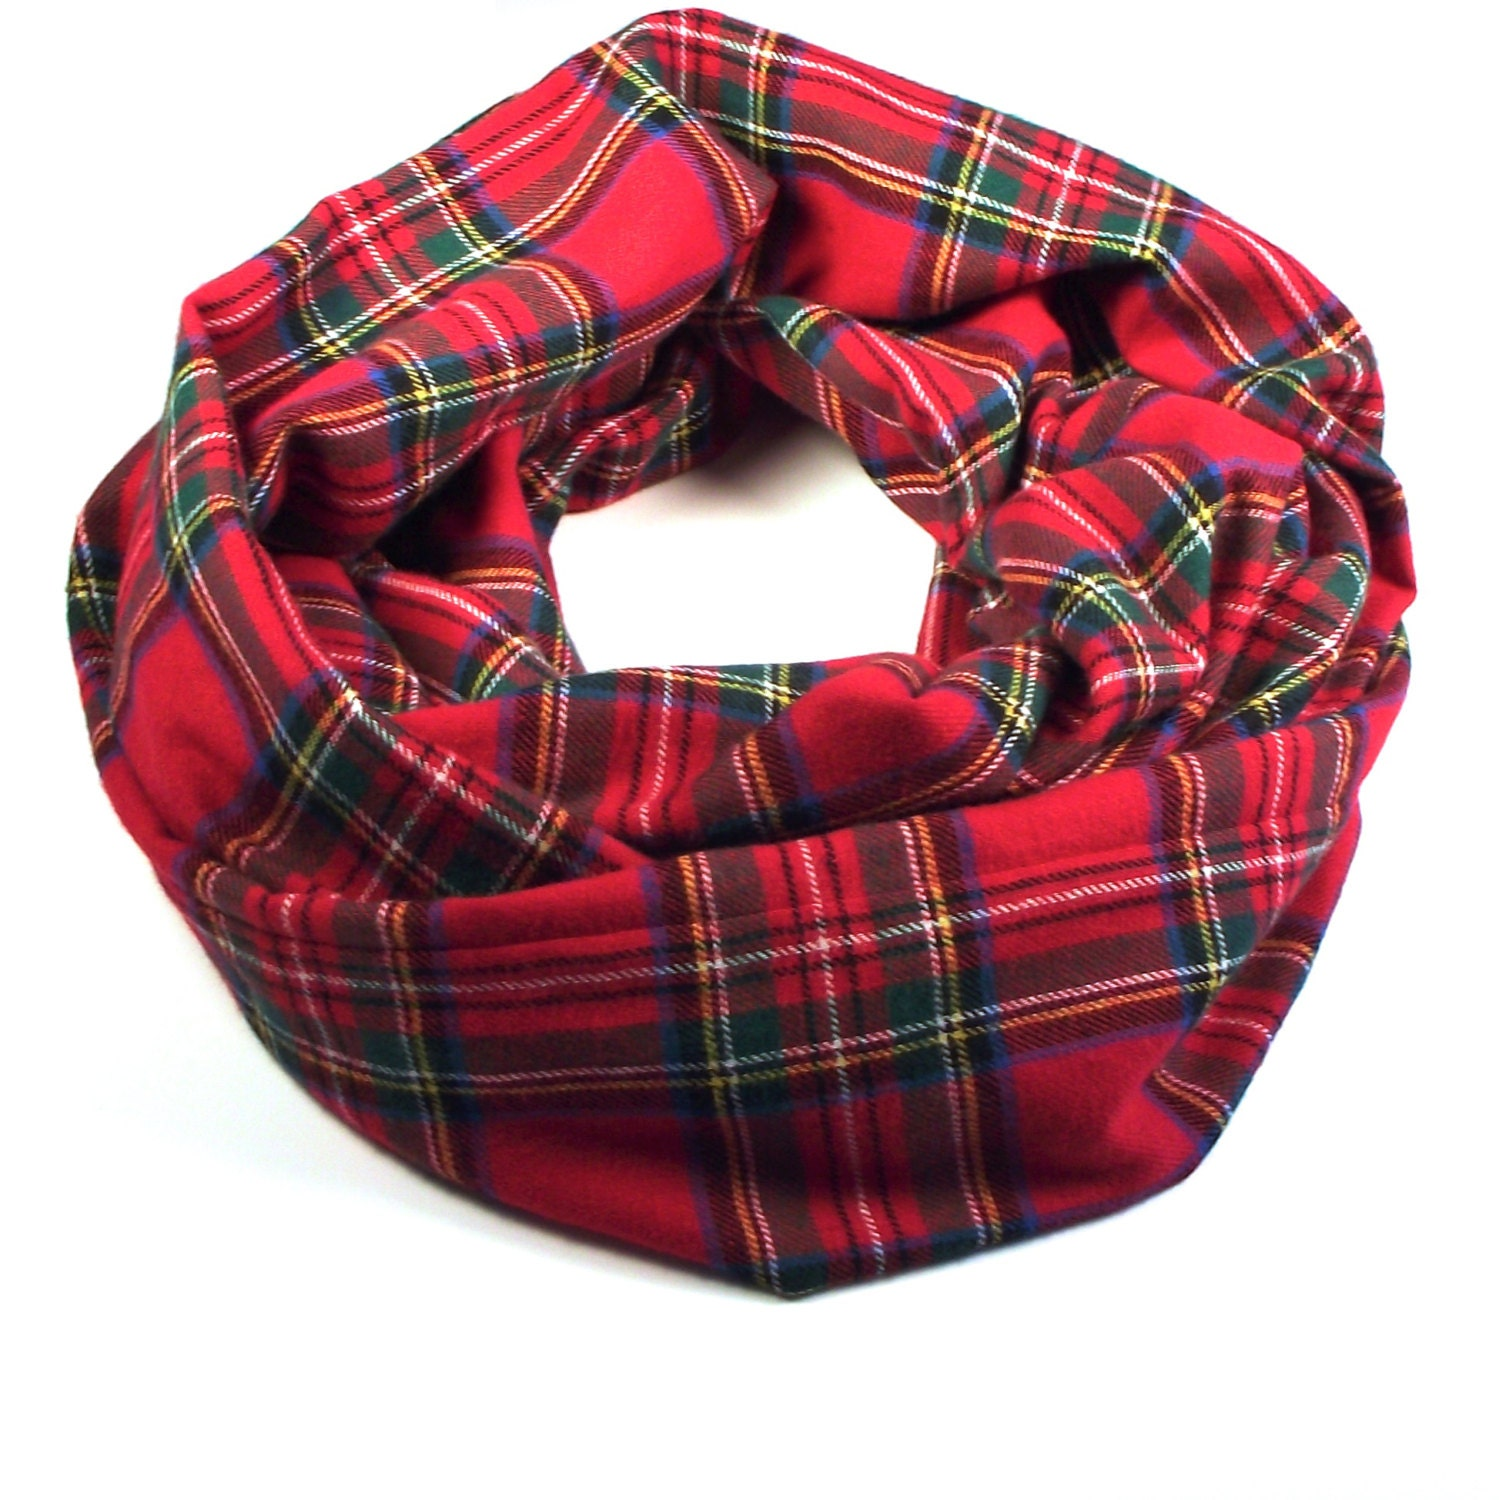 Find great deals on eBay for red plaid scarf. Shop with confidence.